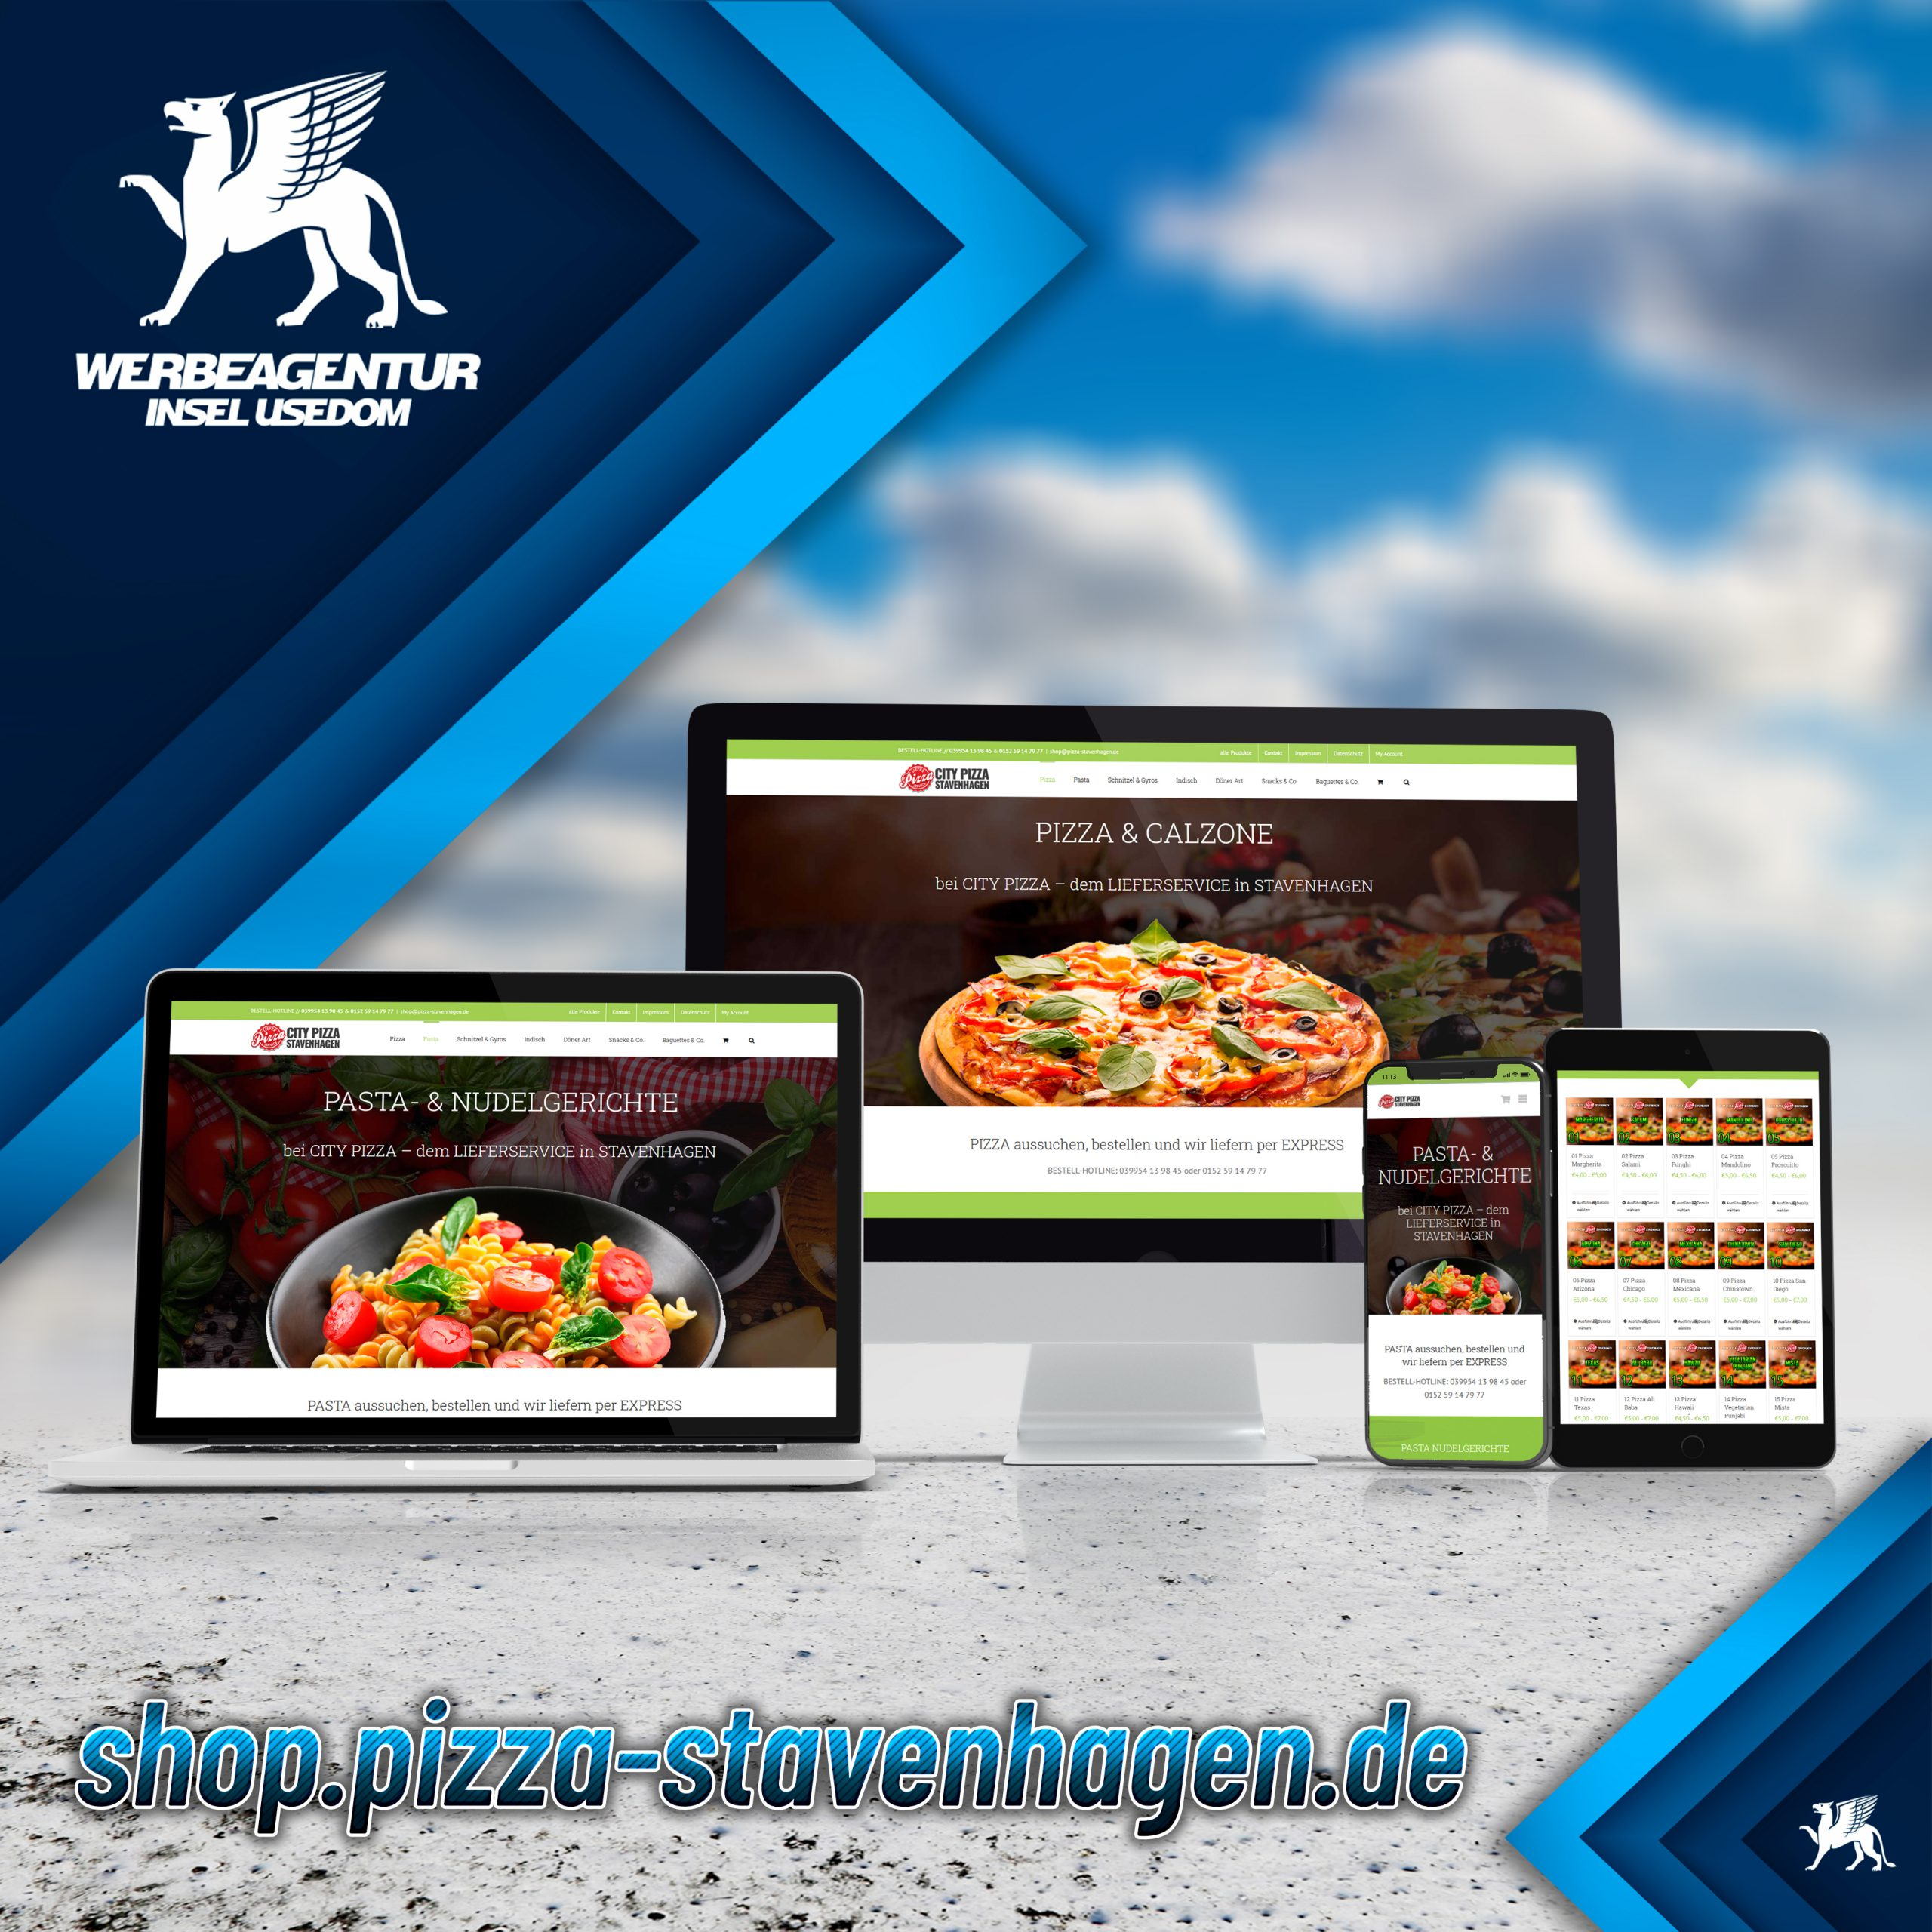 City Pizza Stavenhagen